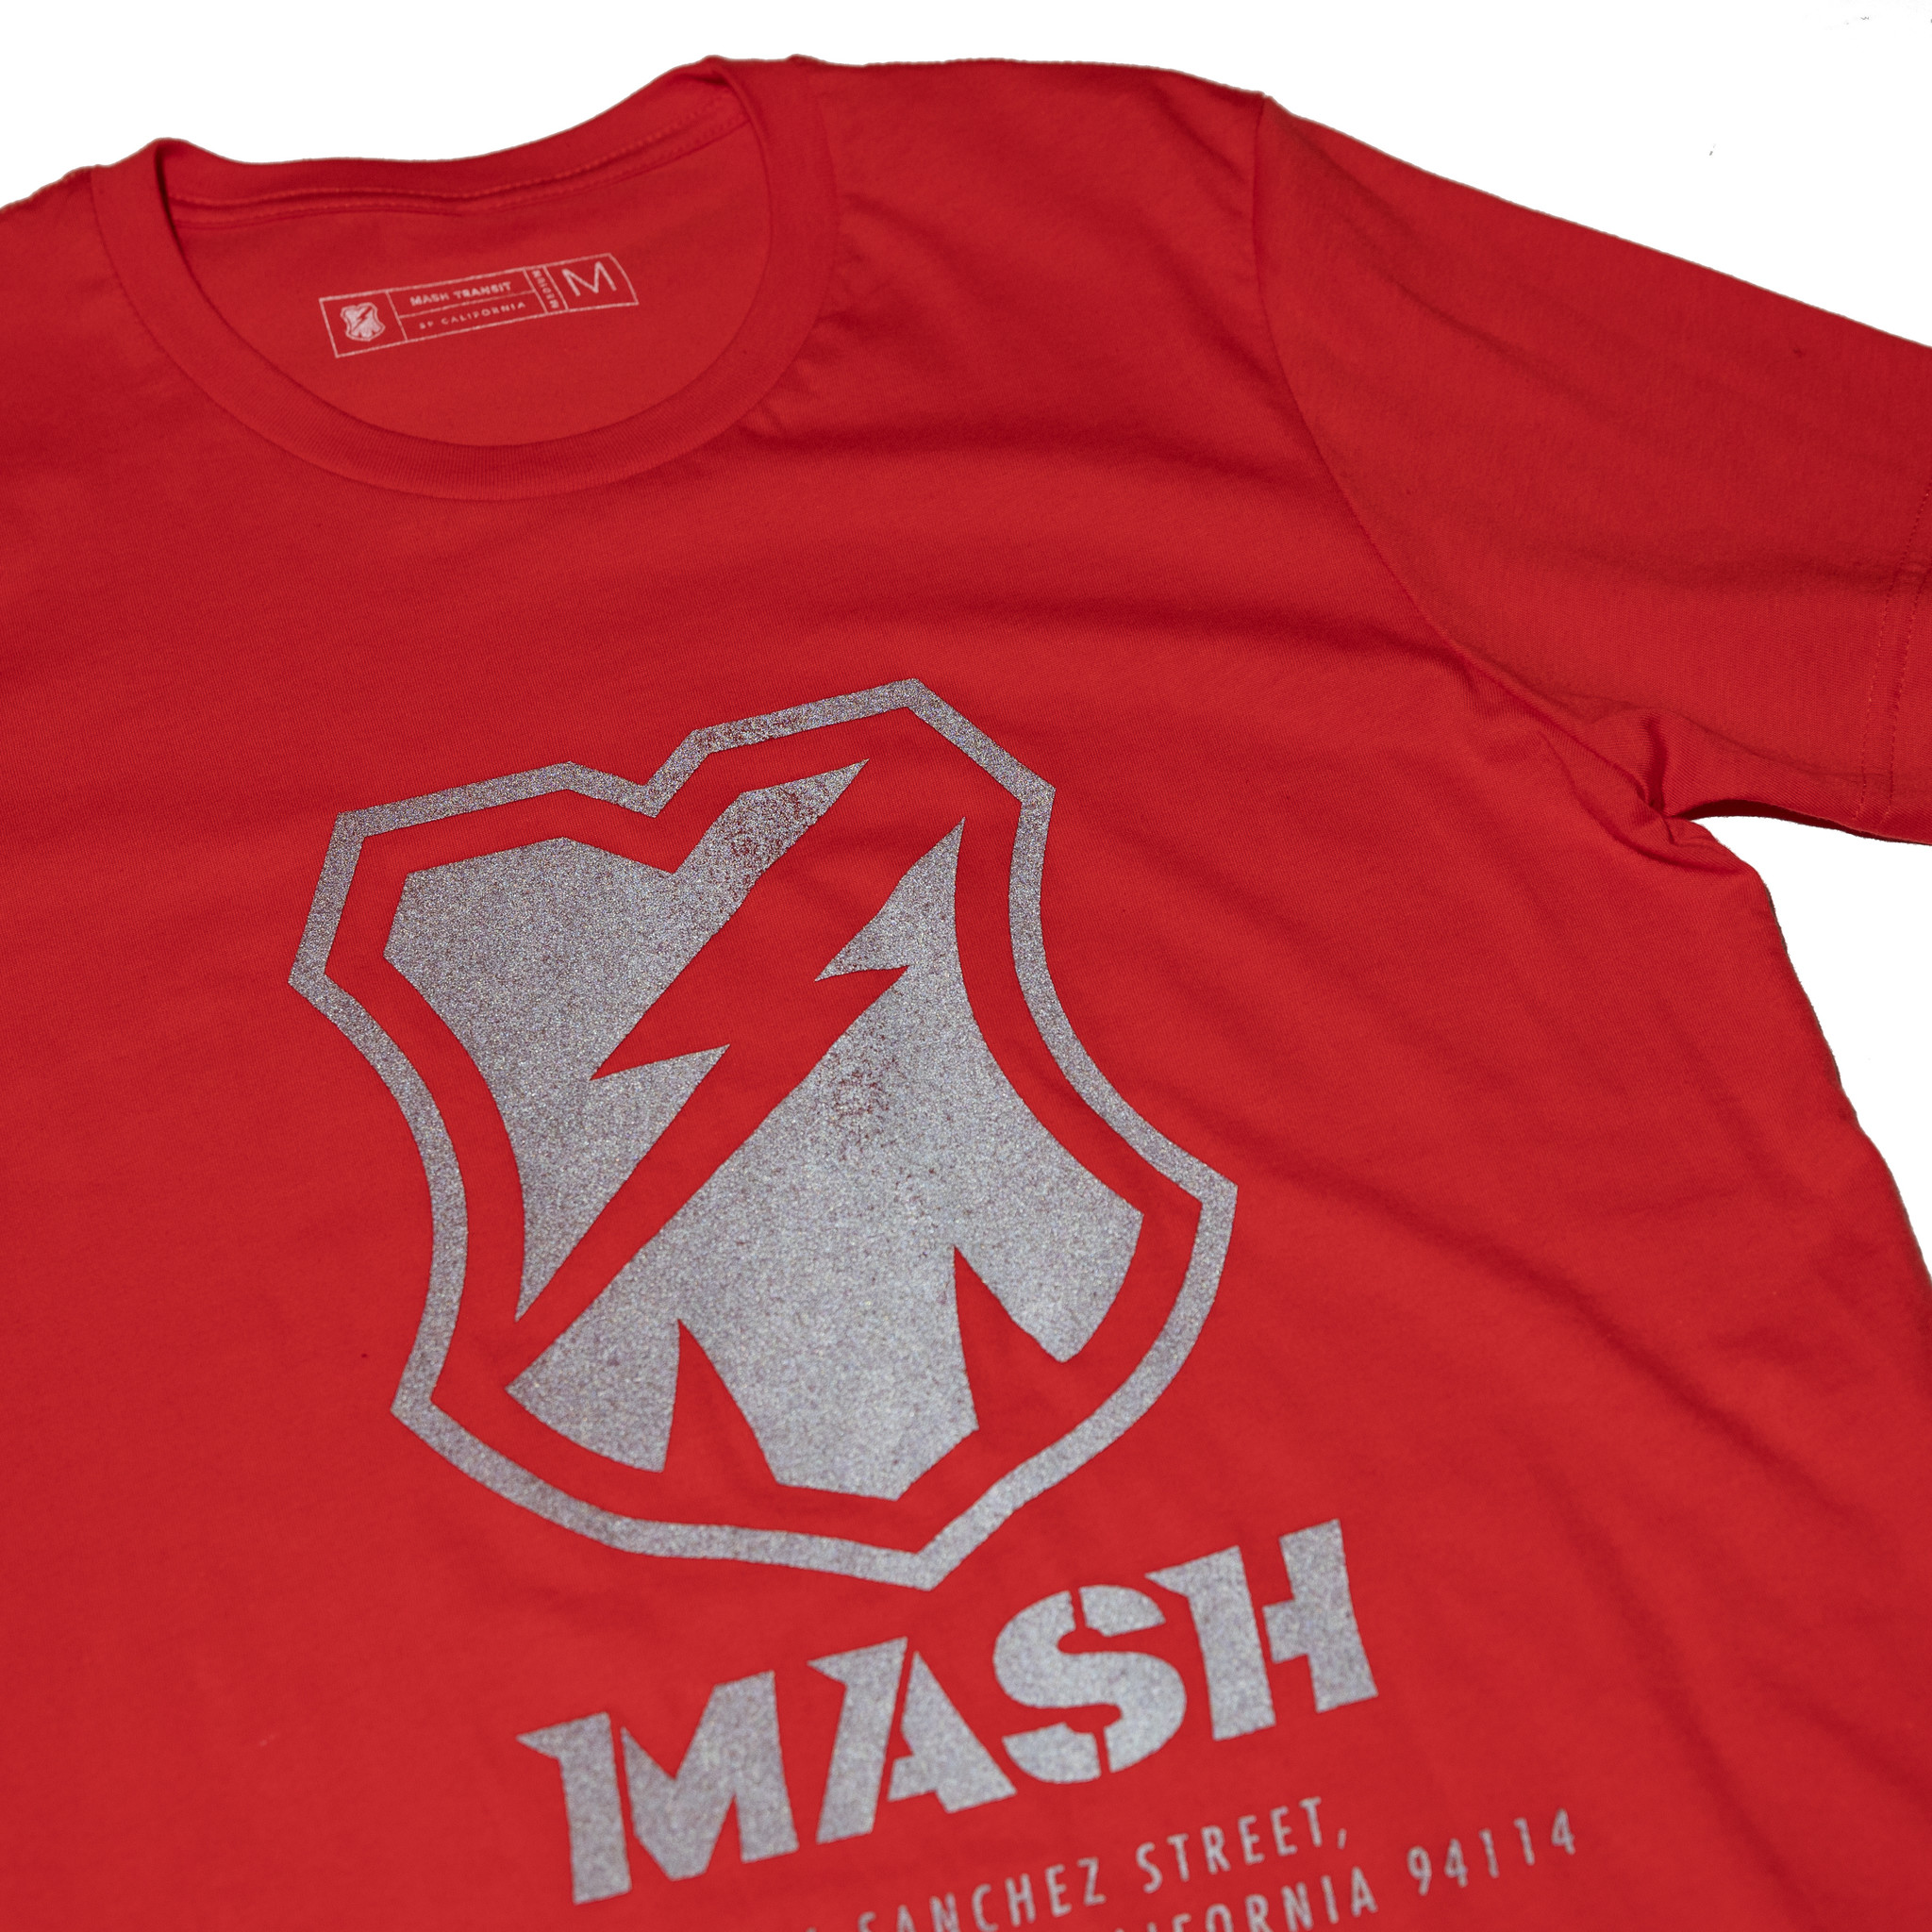 MASH Shop T-Shirt Bright Poppy with Reflective